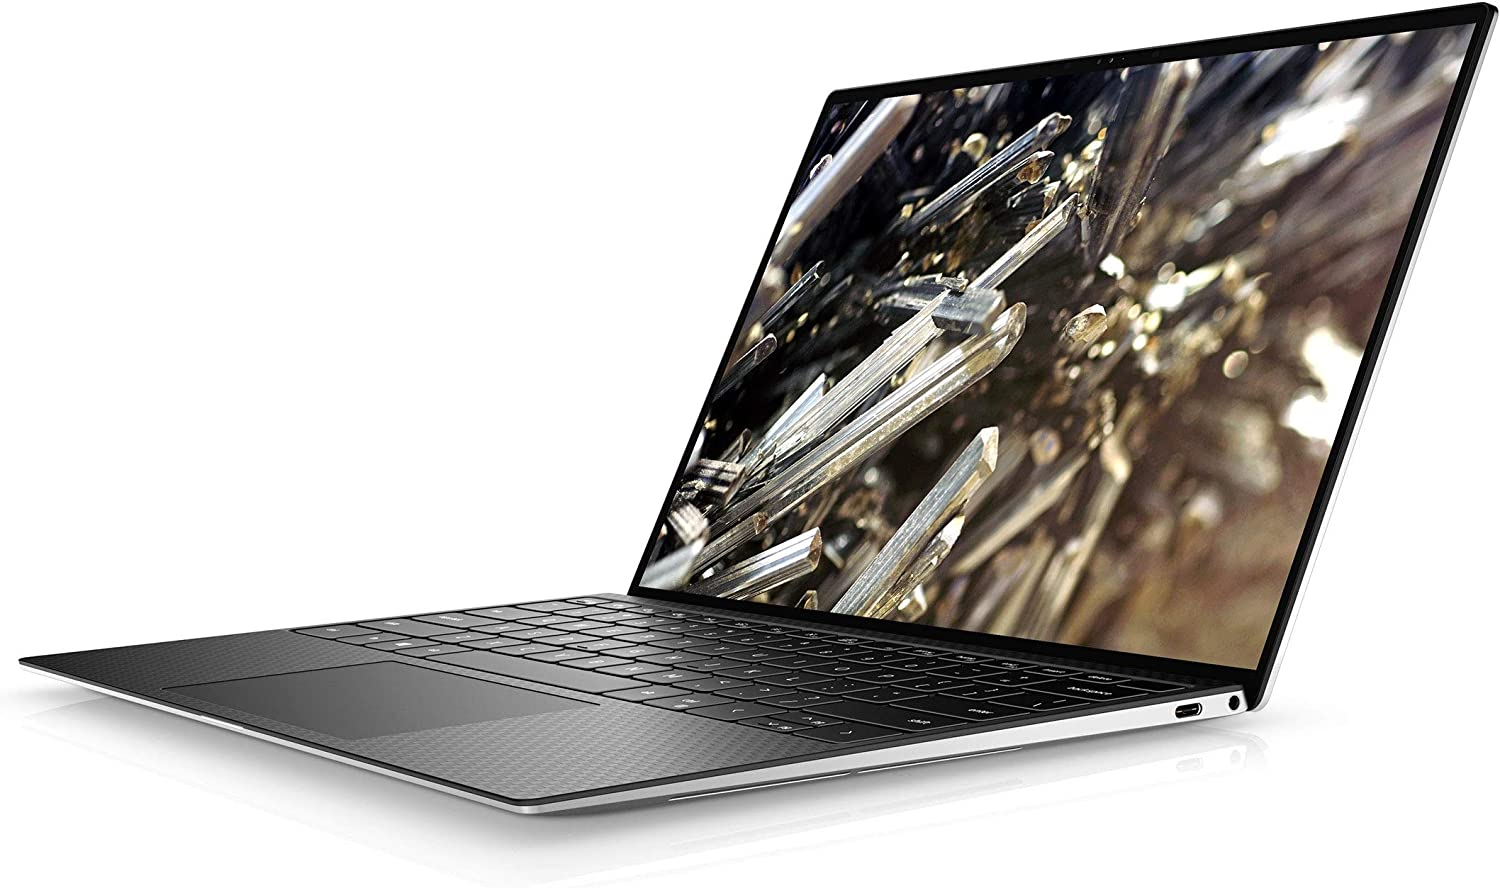 Dell 2020 XPS 9300 13.4